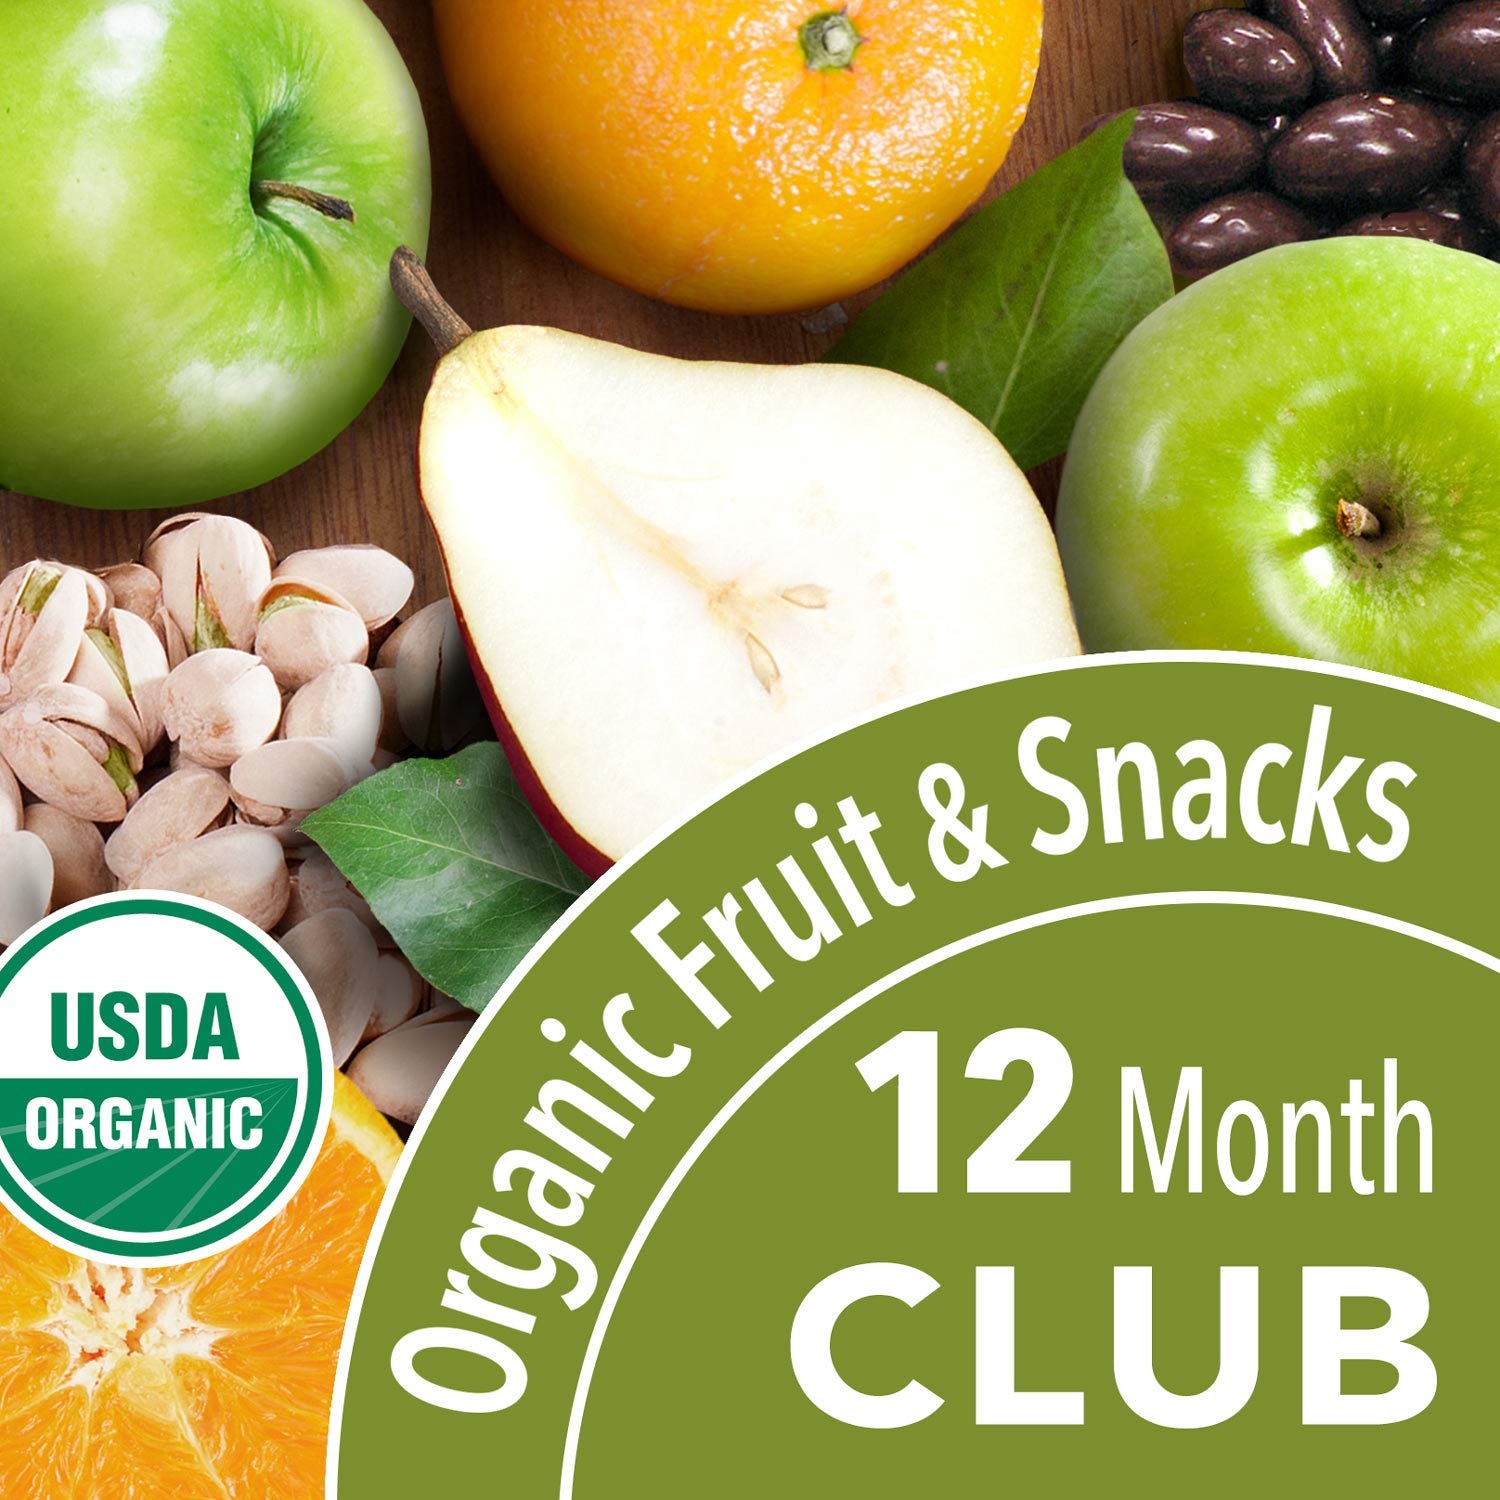 Organic Fruit and Snack Club - 12 Months (Choice of 3, 6, 9 or 12 Mos.)